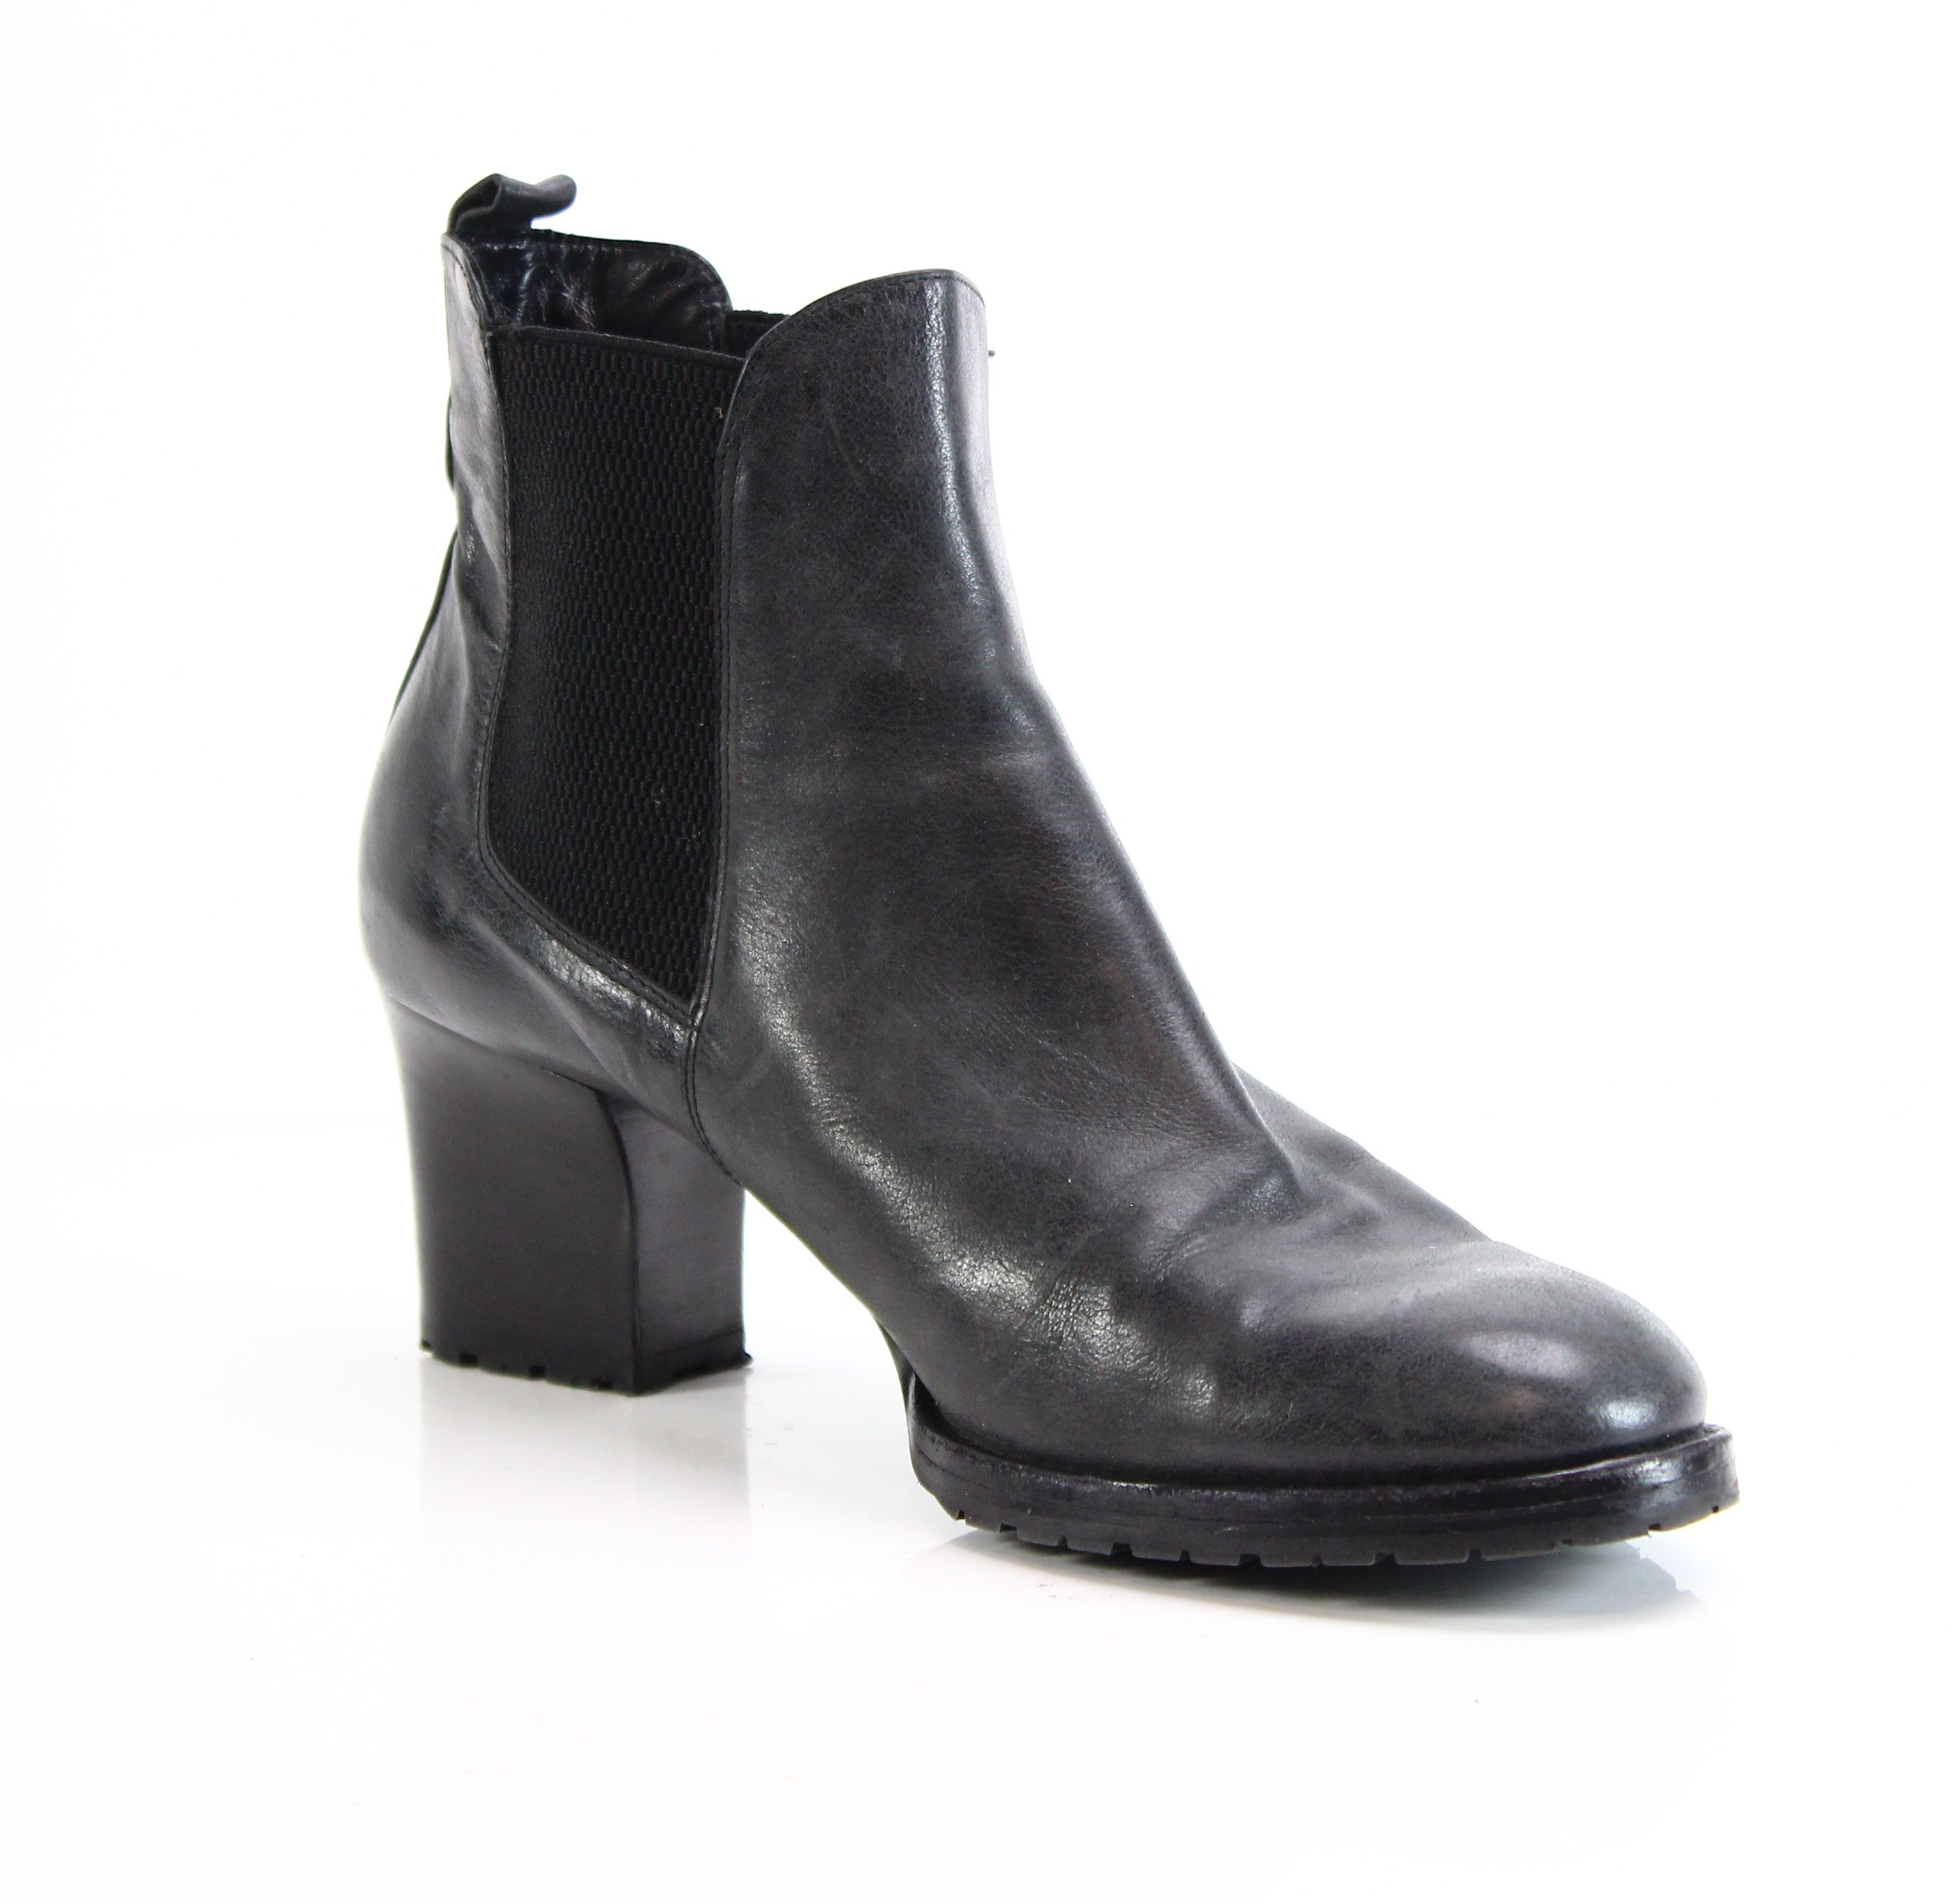 Vero Cuoio NEW Black Women's 10M Medium Heel Booties Leather Shoes 0- #461